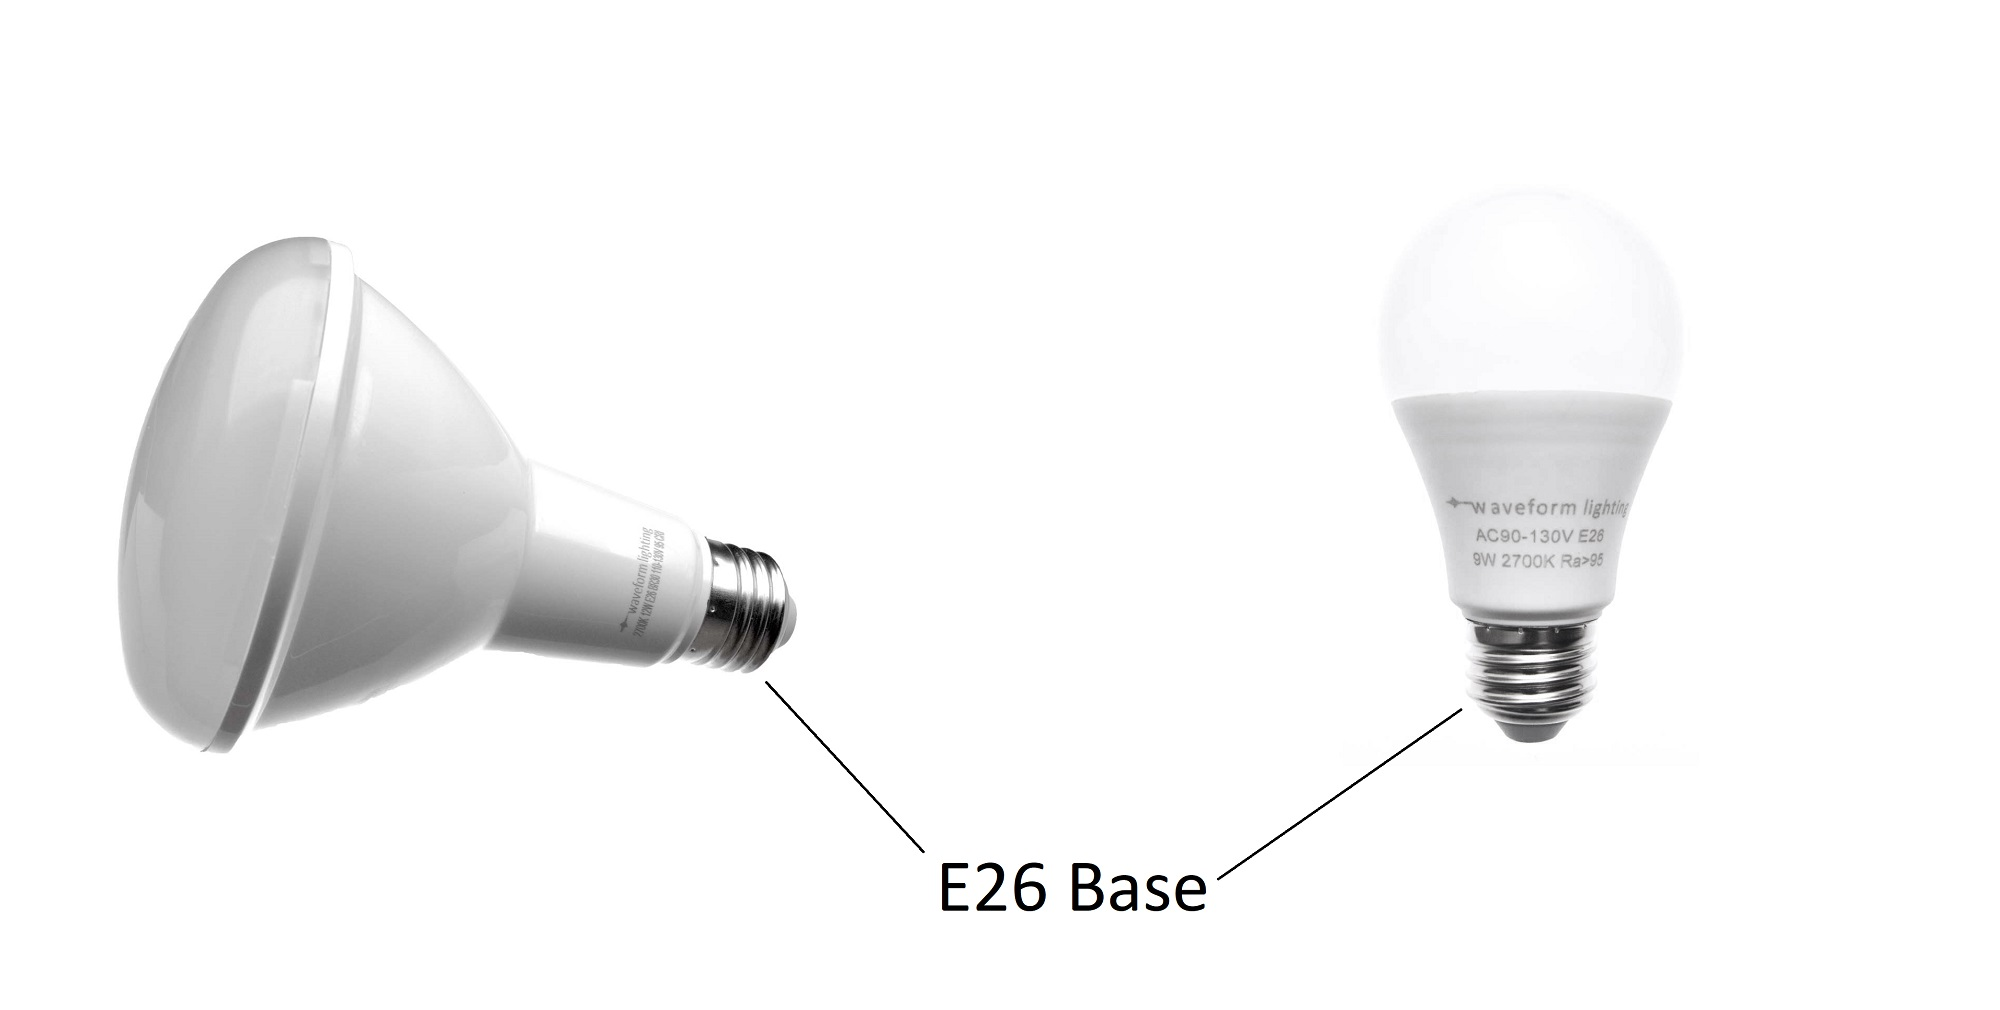 What Is An E26 Bulb And Does It Look Like Waveform Lighting Besides Incandescent Light Bulbs On Diagram Therefore Any Or Lamp That Utilizes The Cap Base For Mounting Electrical Contact